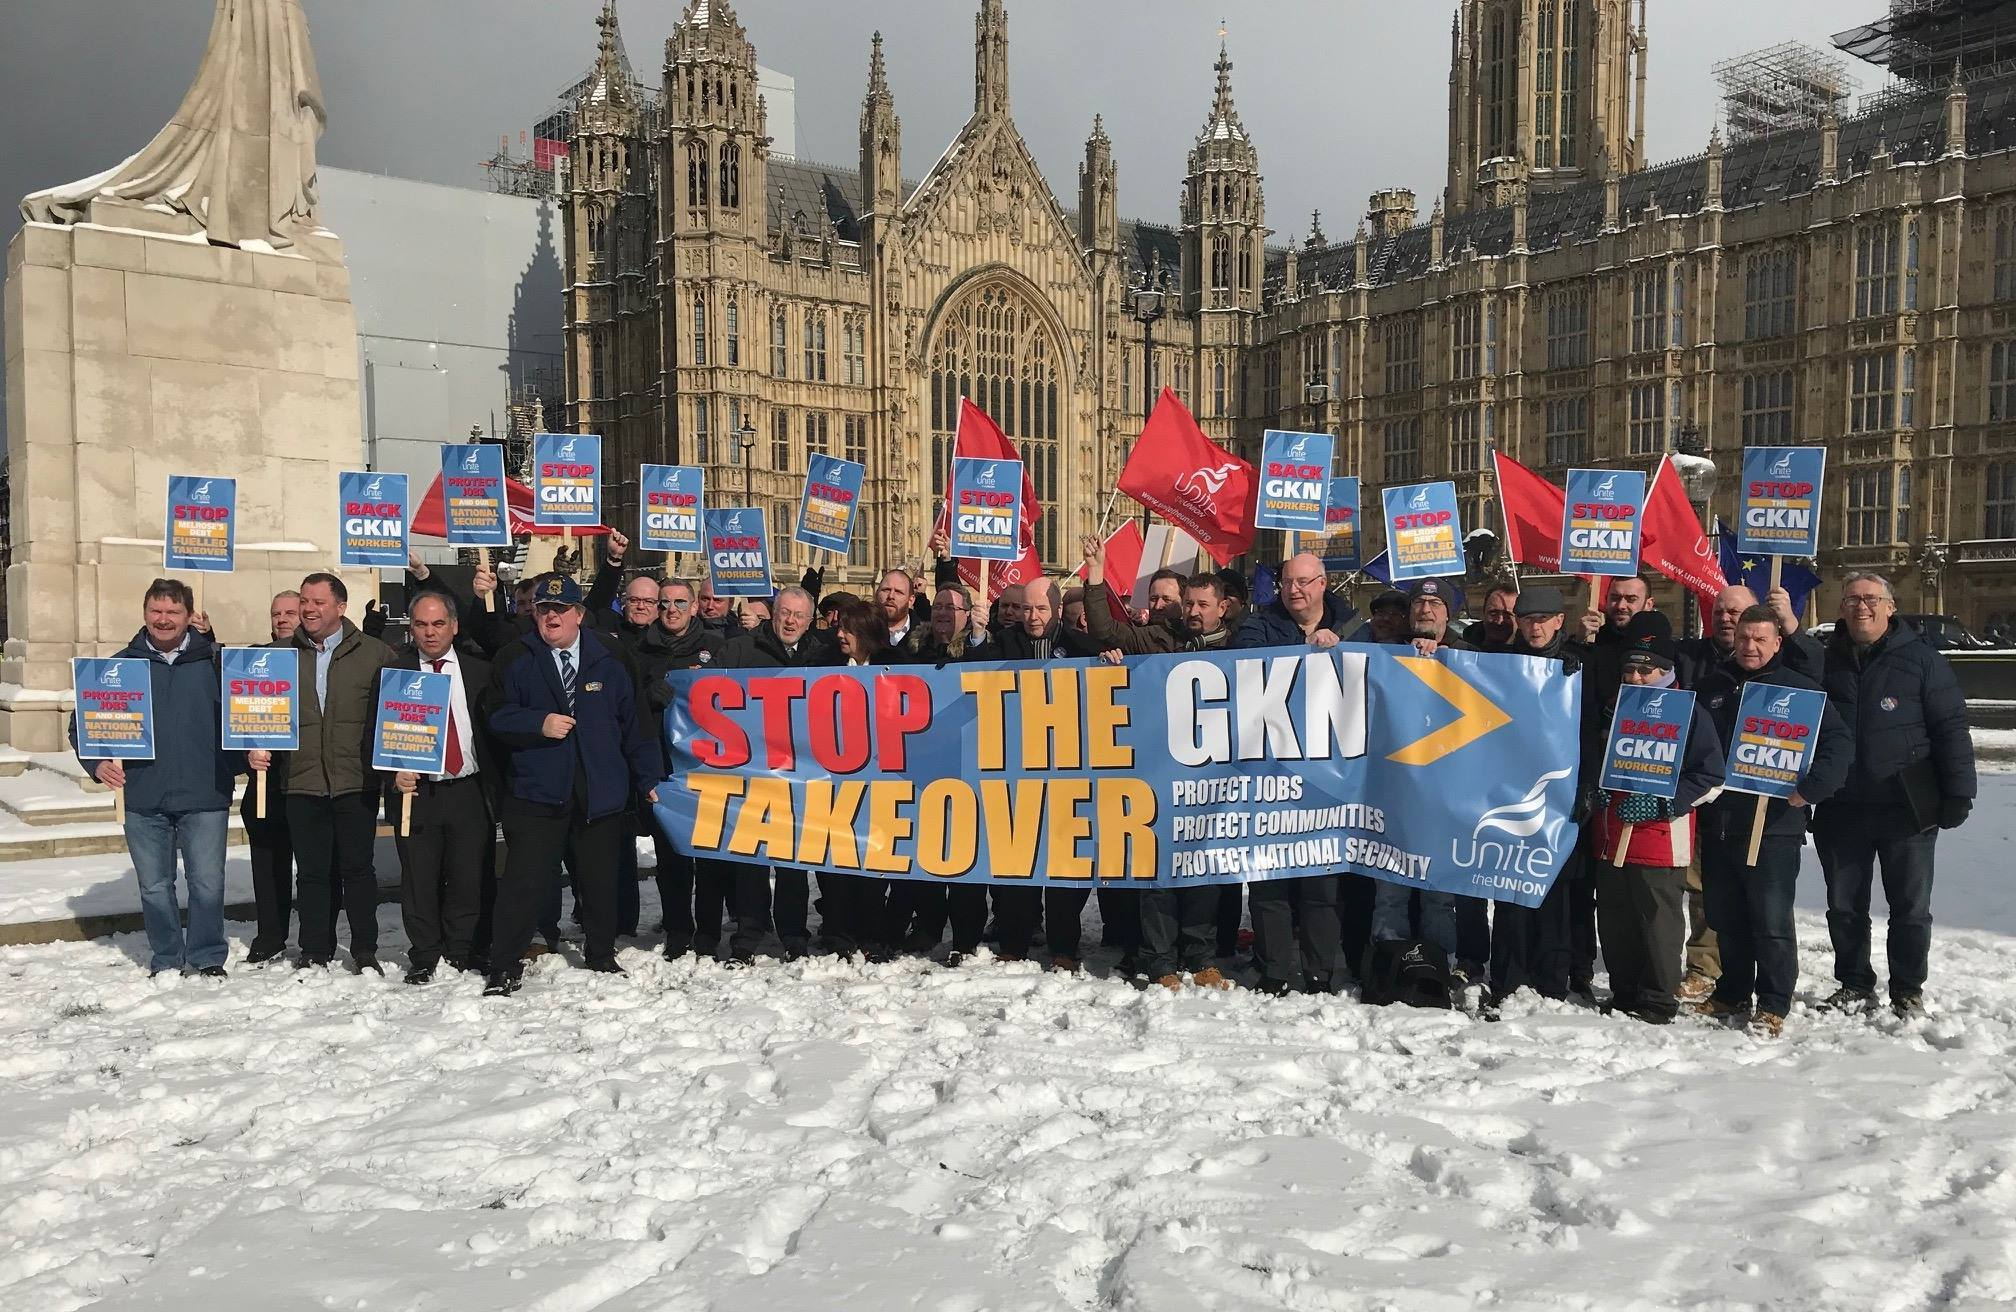 UK: GKN workers urge government to stop debt-fuelled takeover bid